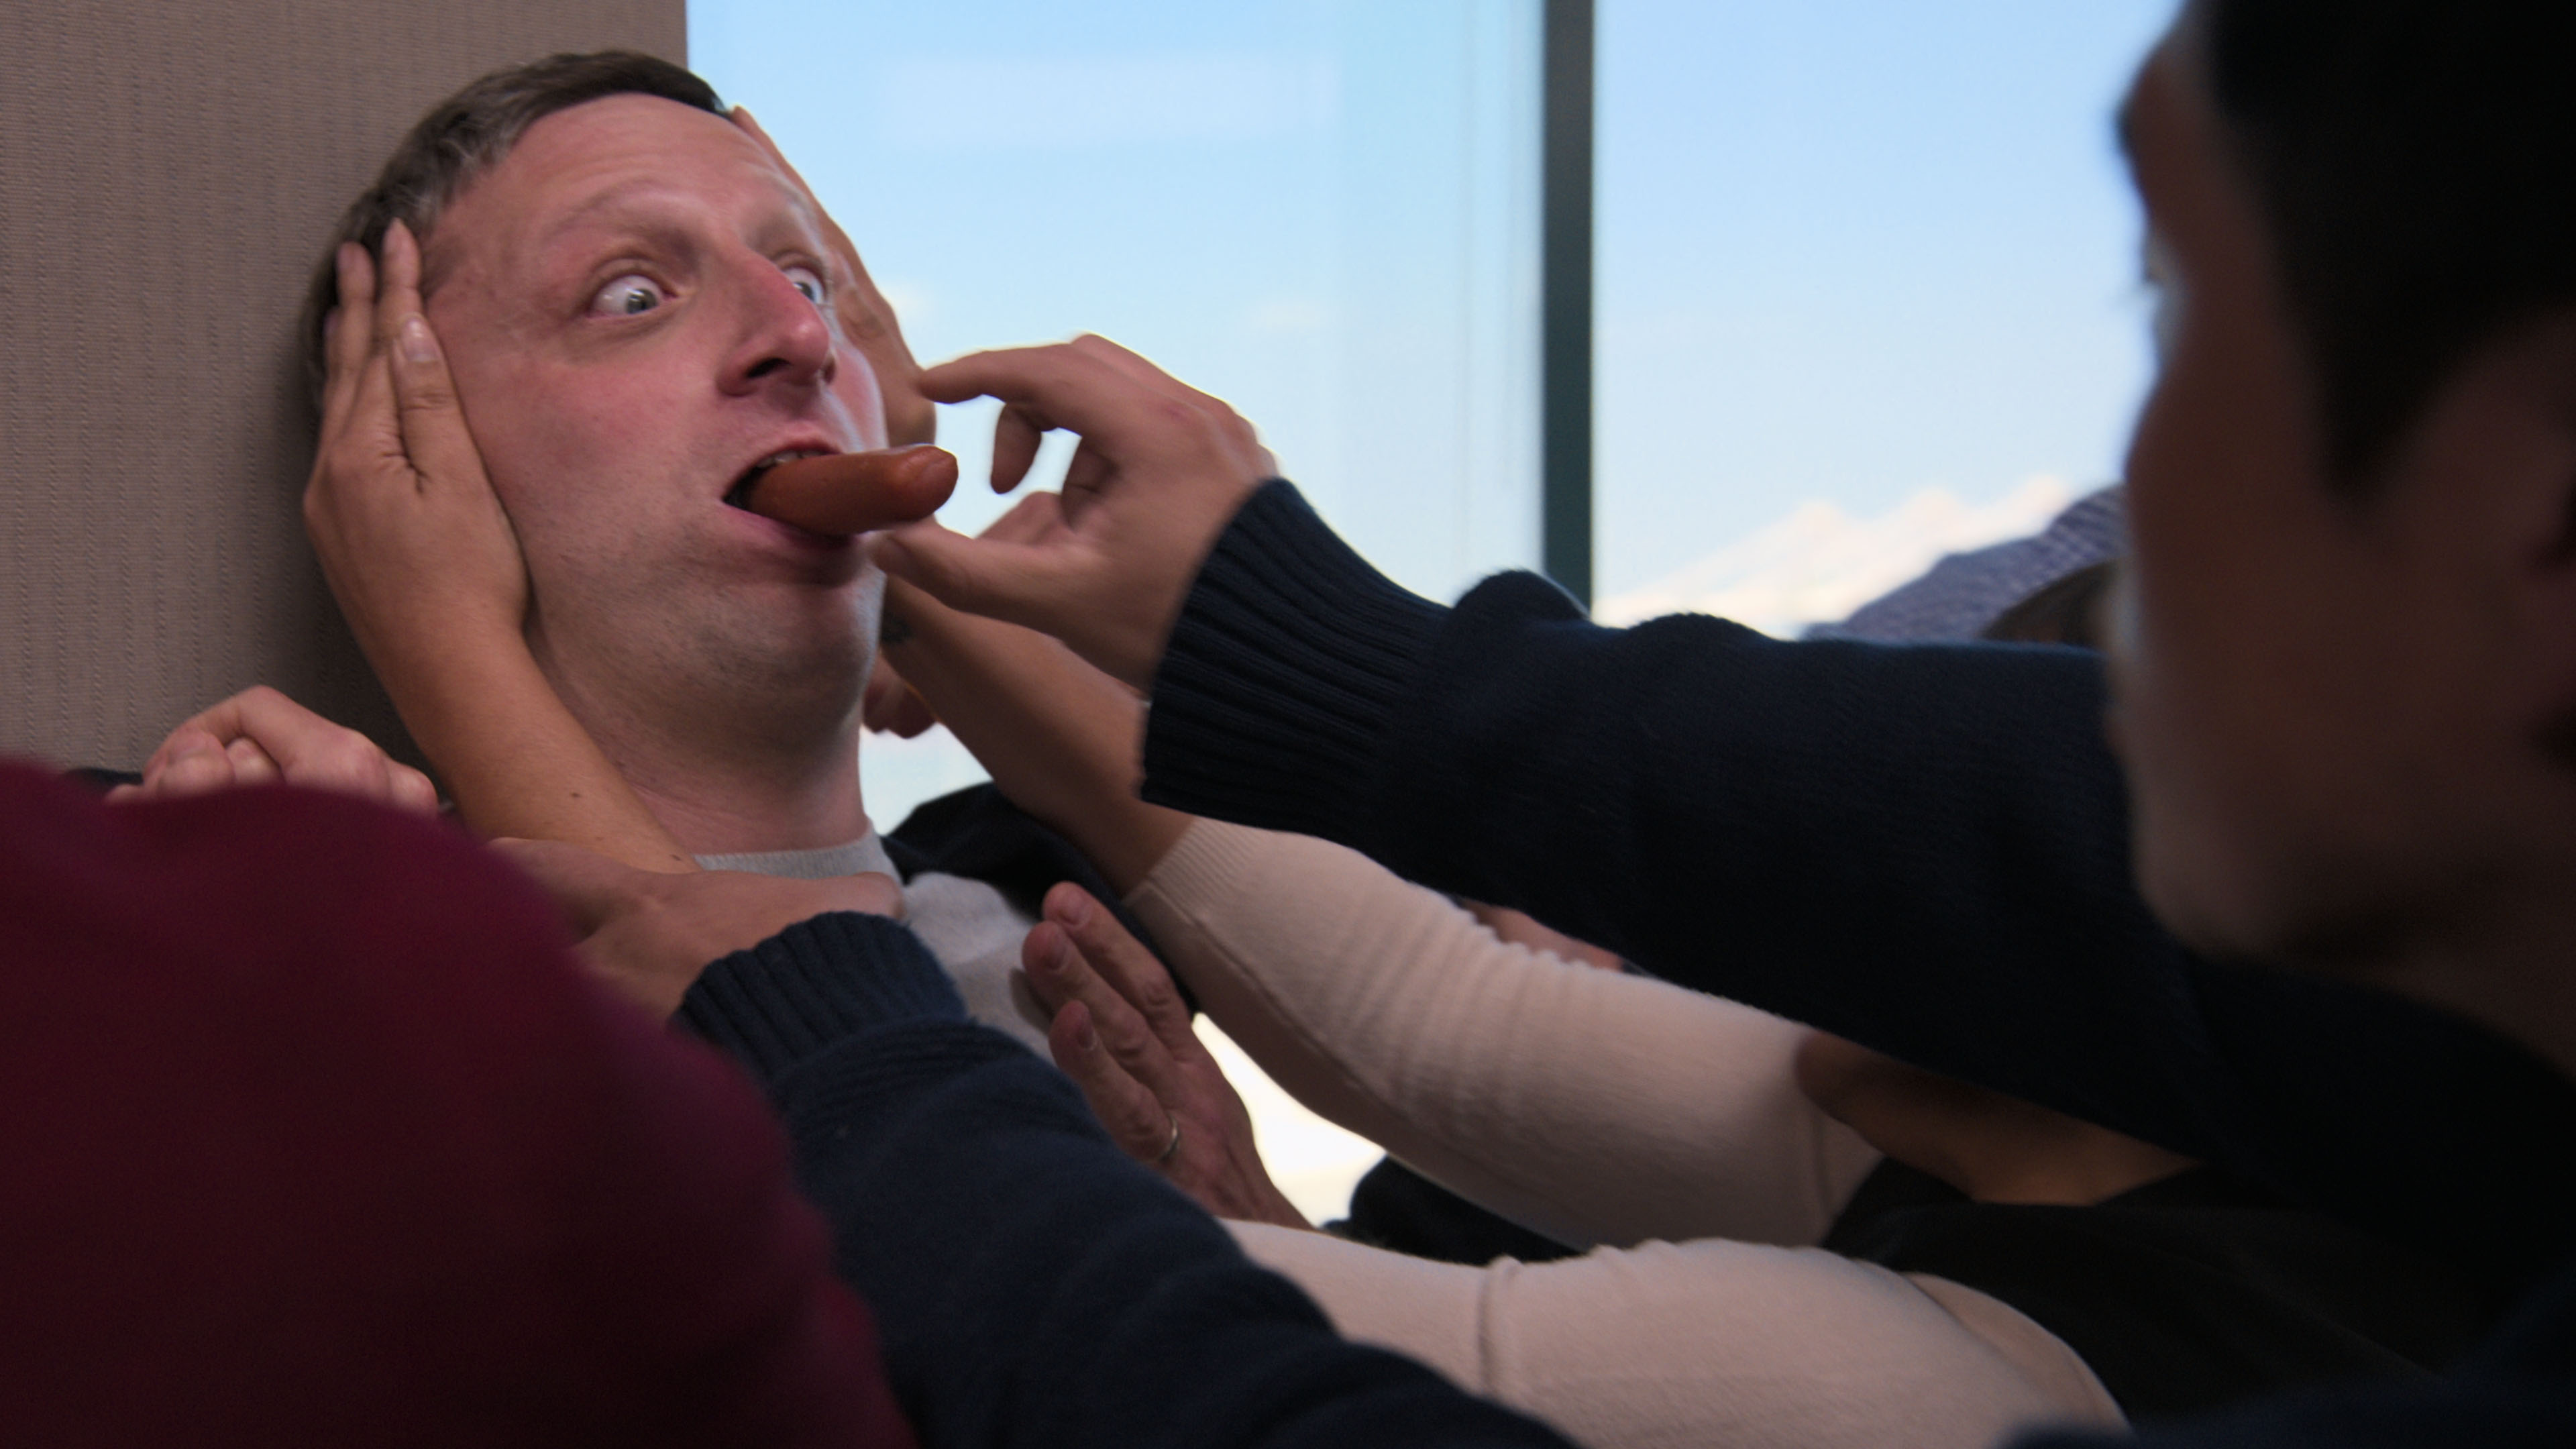 Tim Robinson, backed against a wall with a hot dog sticking out of his mouth, has several co-workers trying to grab the hot dog in a skit from I Think You Should Leave season 2.